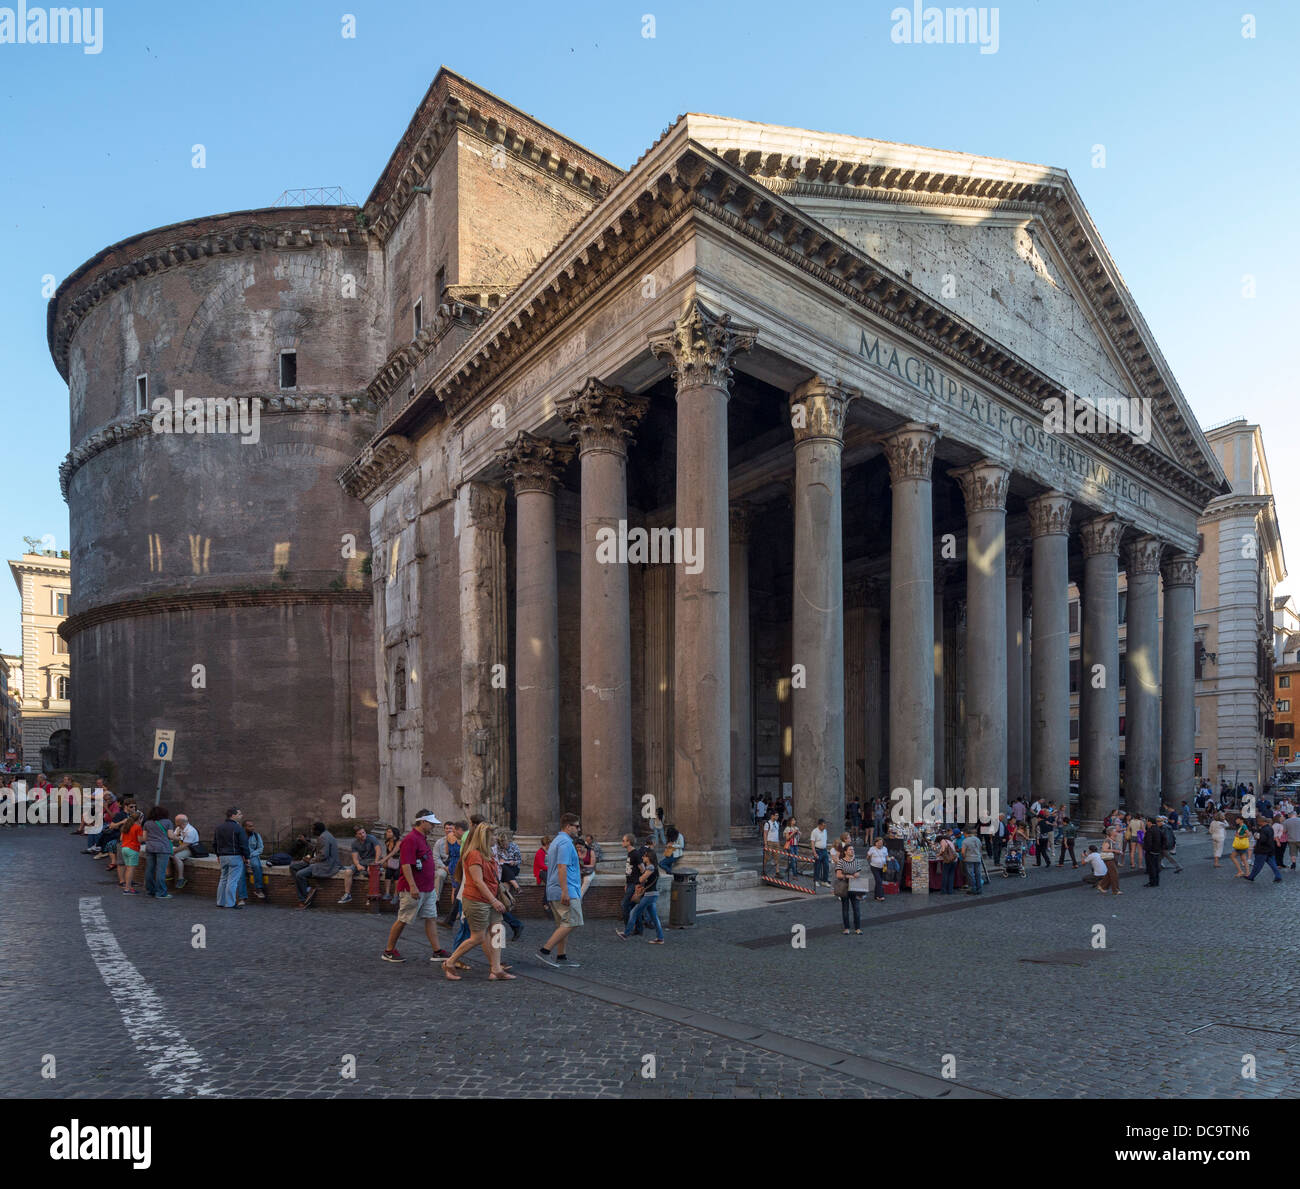 dome and pediment of Pantheon, Rome, Italy - Stock Image